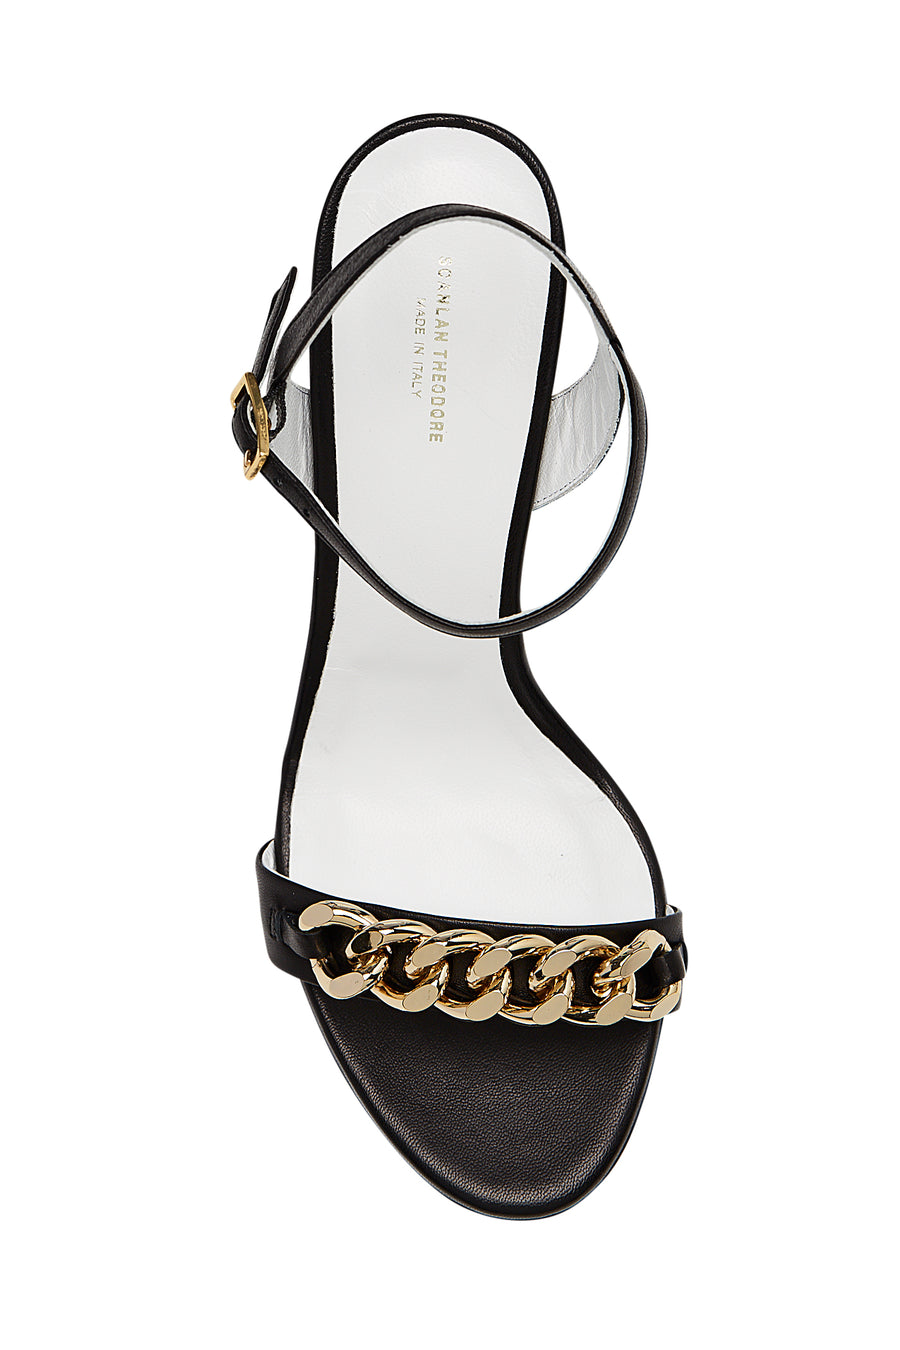 CHAIN SANDAL 8 NERO, NERO color